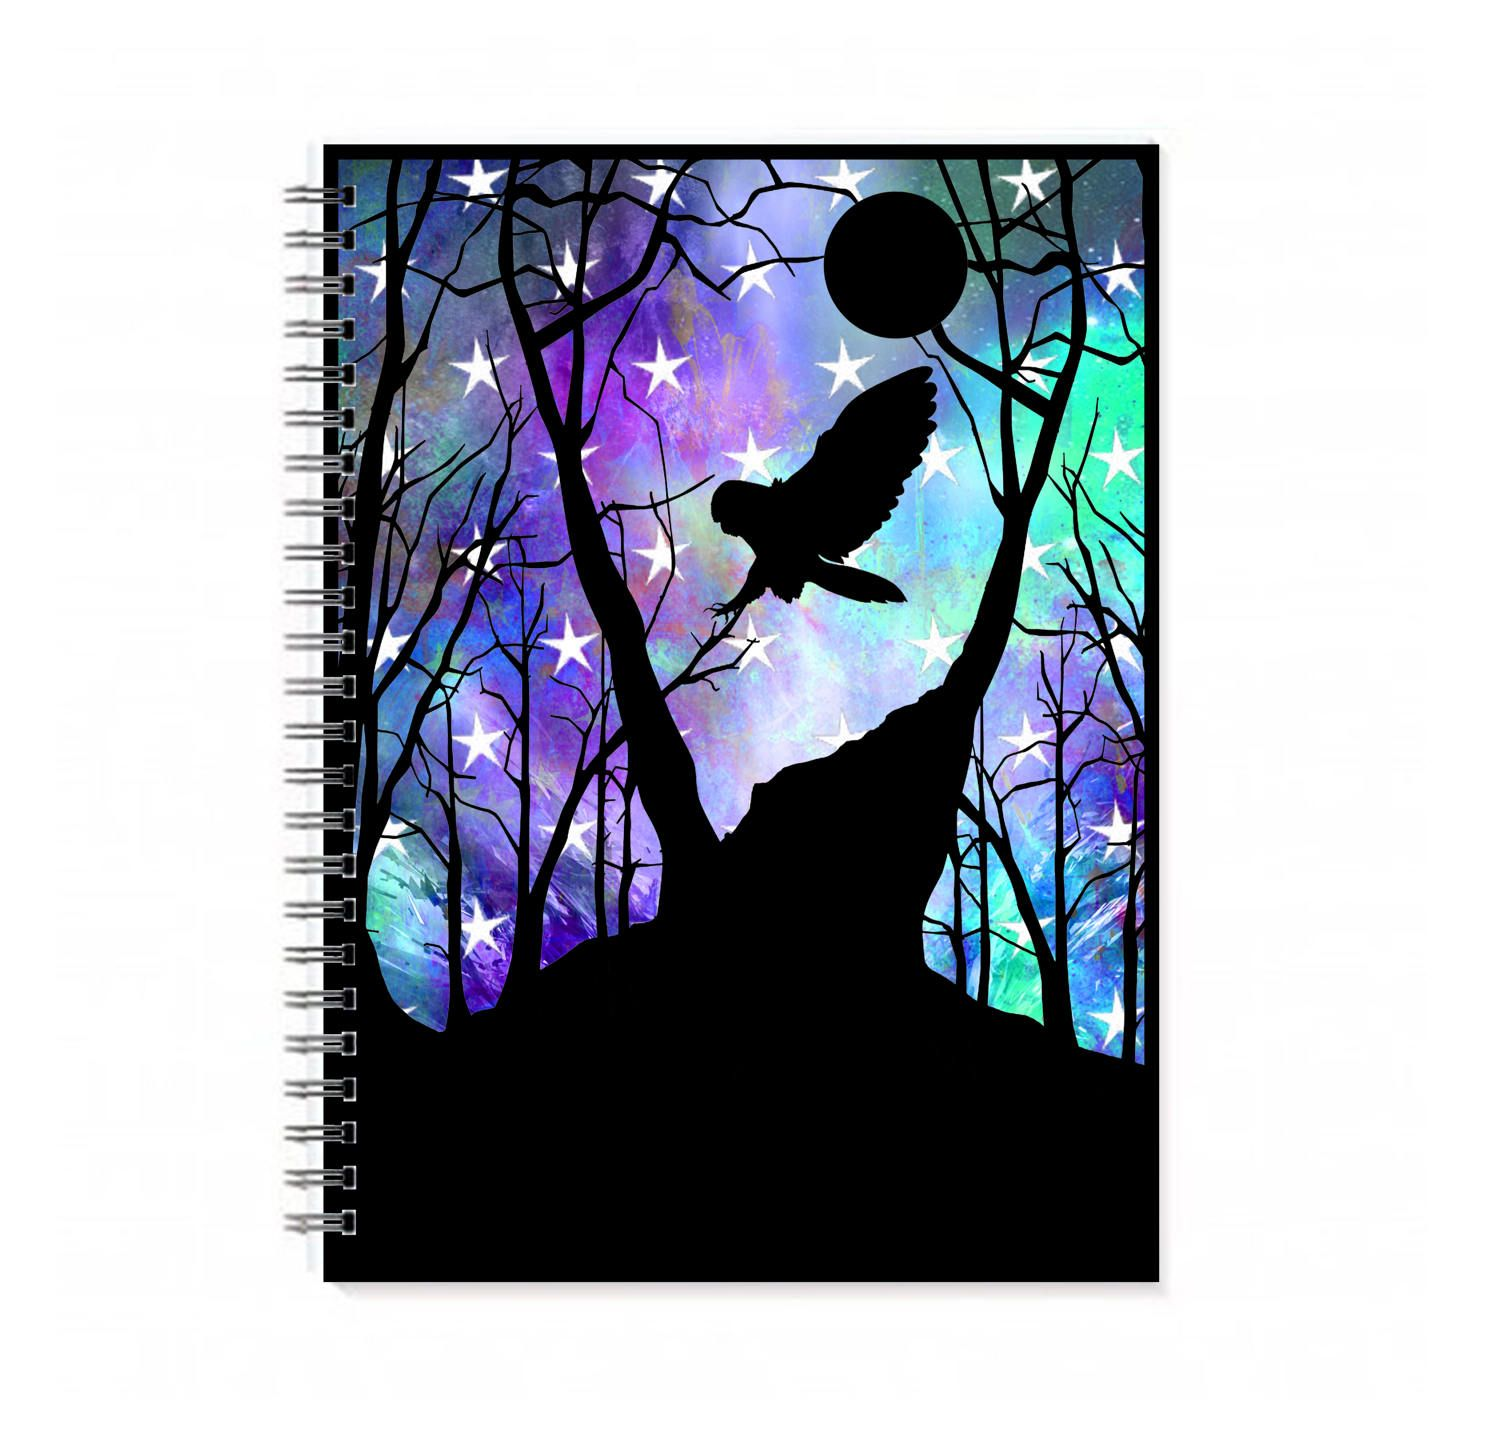 This Is A 100 Sheet (200 Page) Spiral Bound Notebook